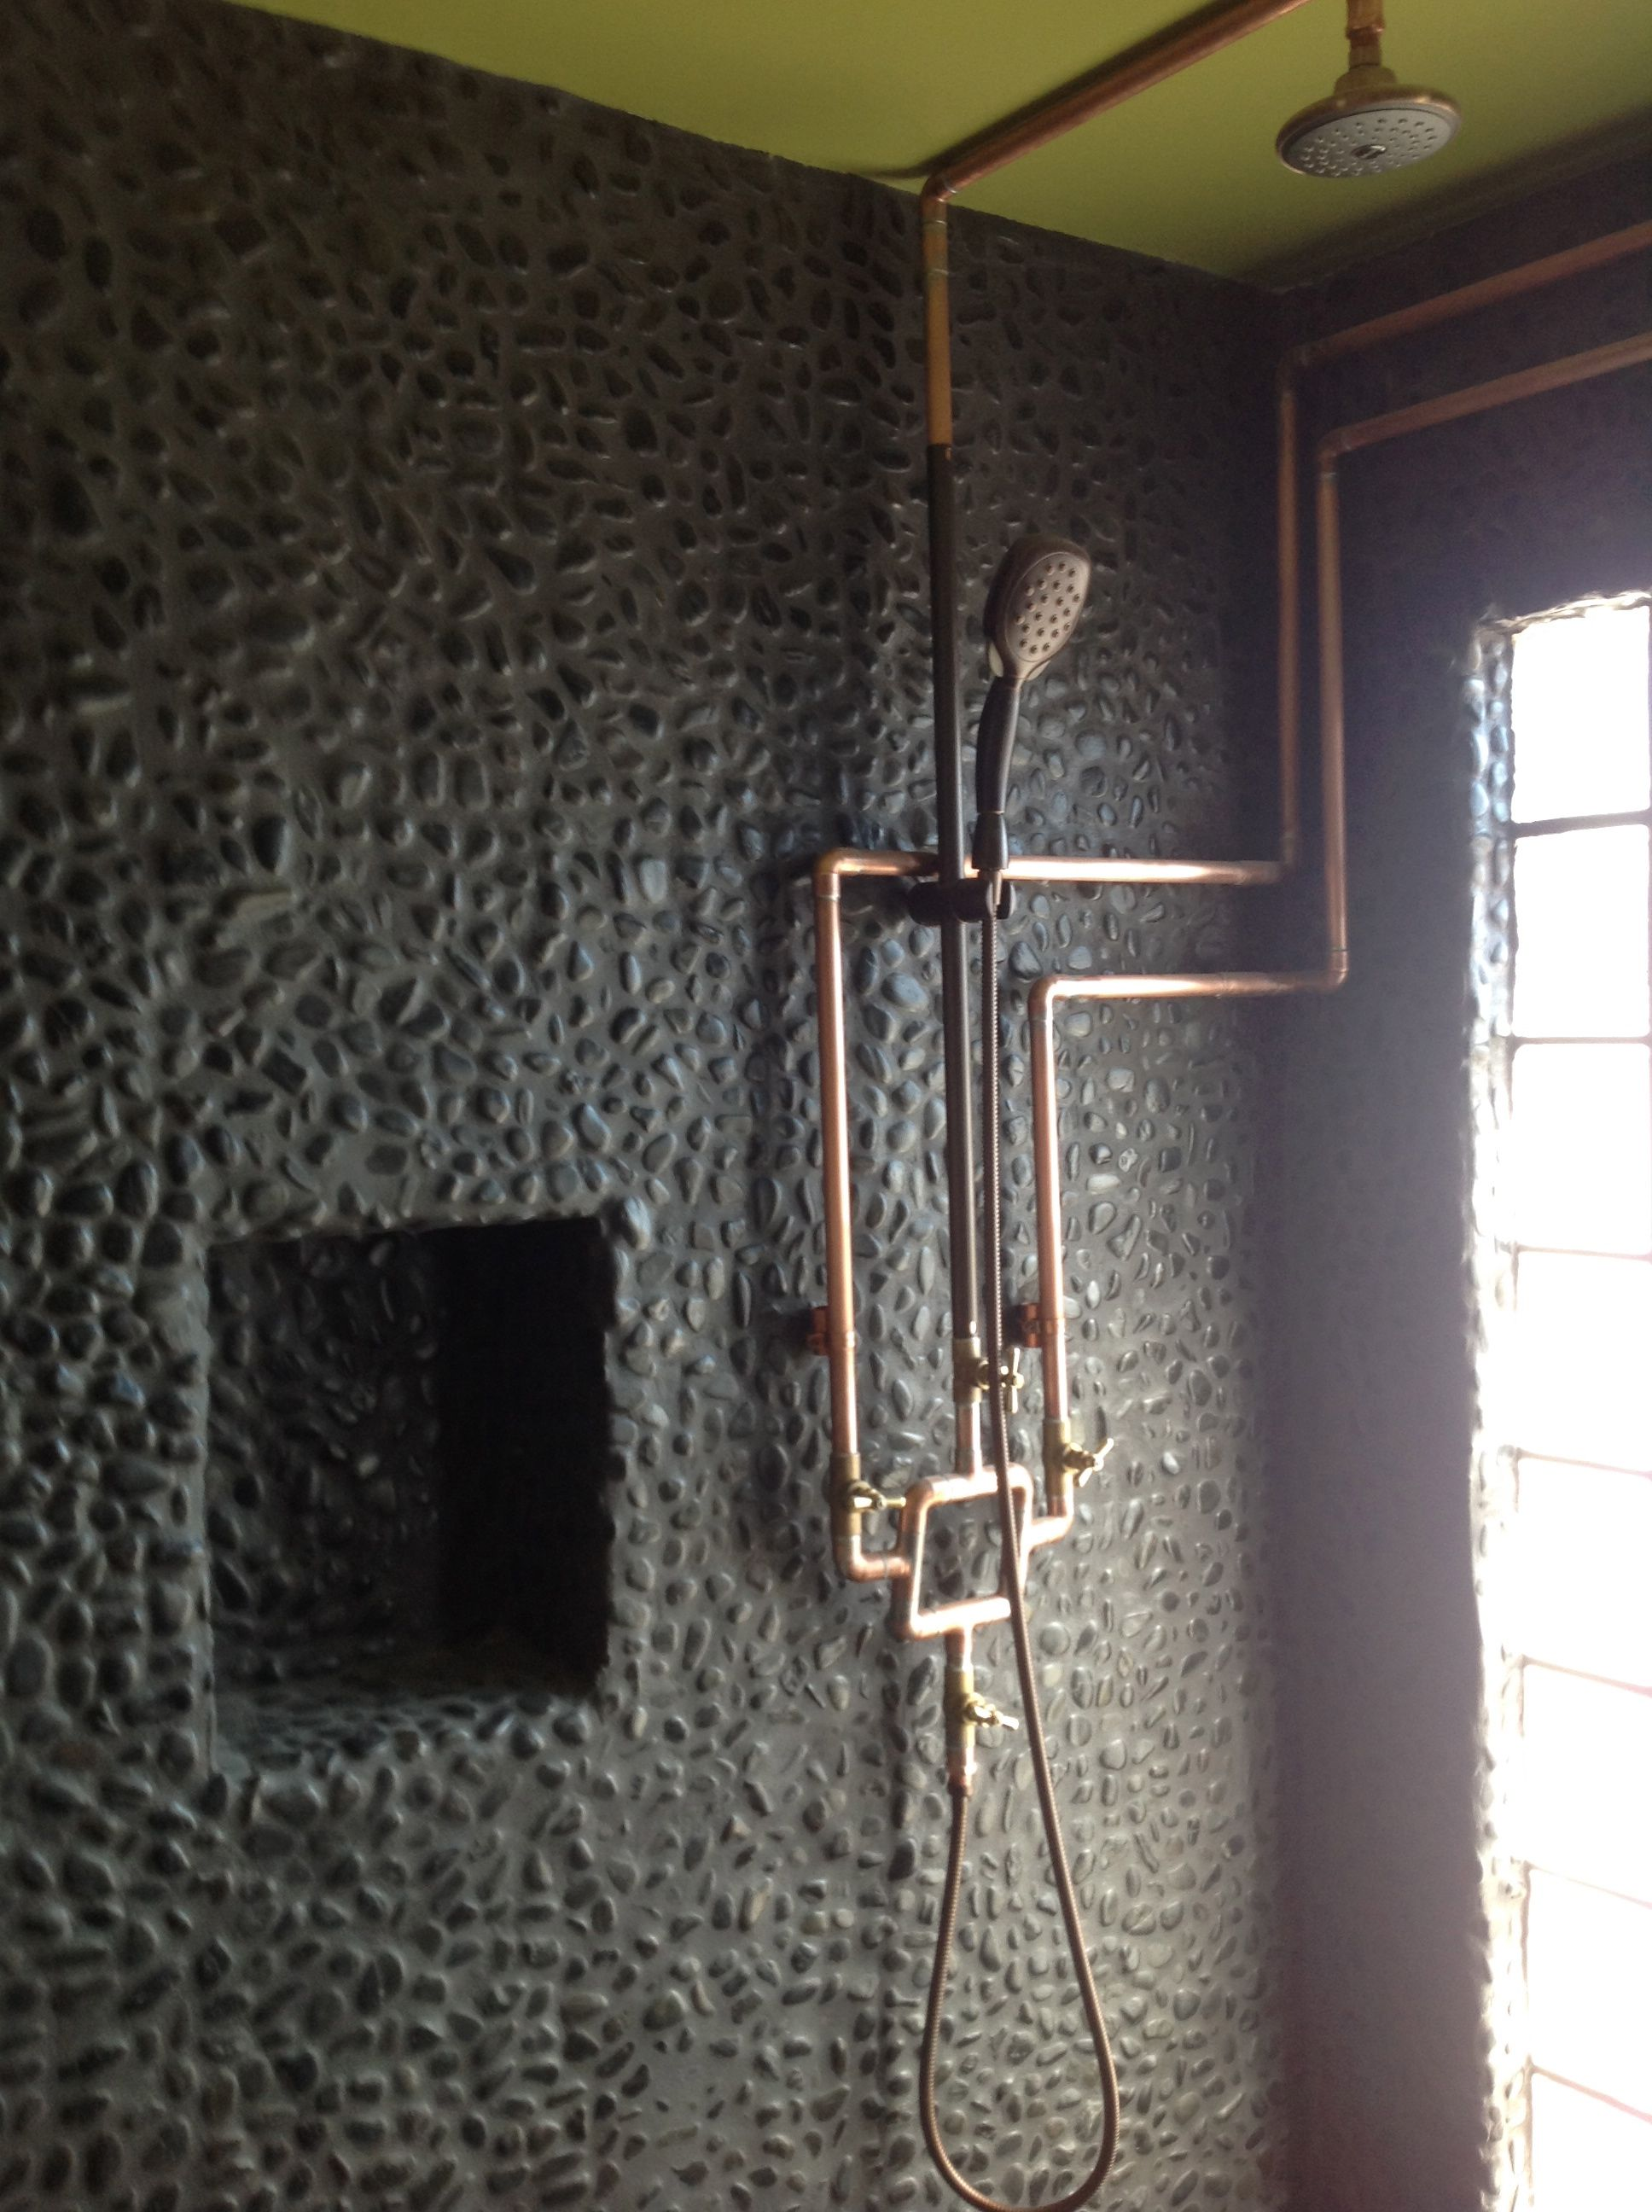 Mancave open shower, exposed copper plumbing. | Bathroom | Pinterest ...